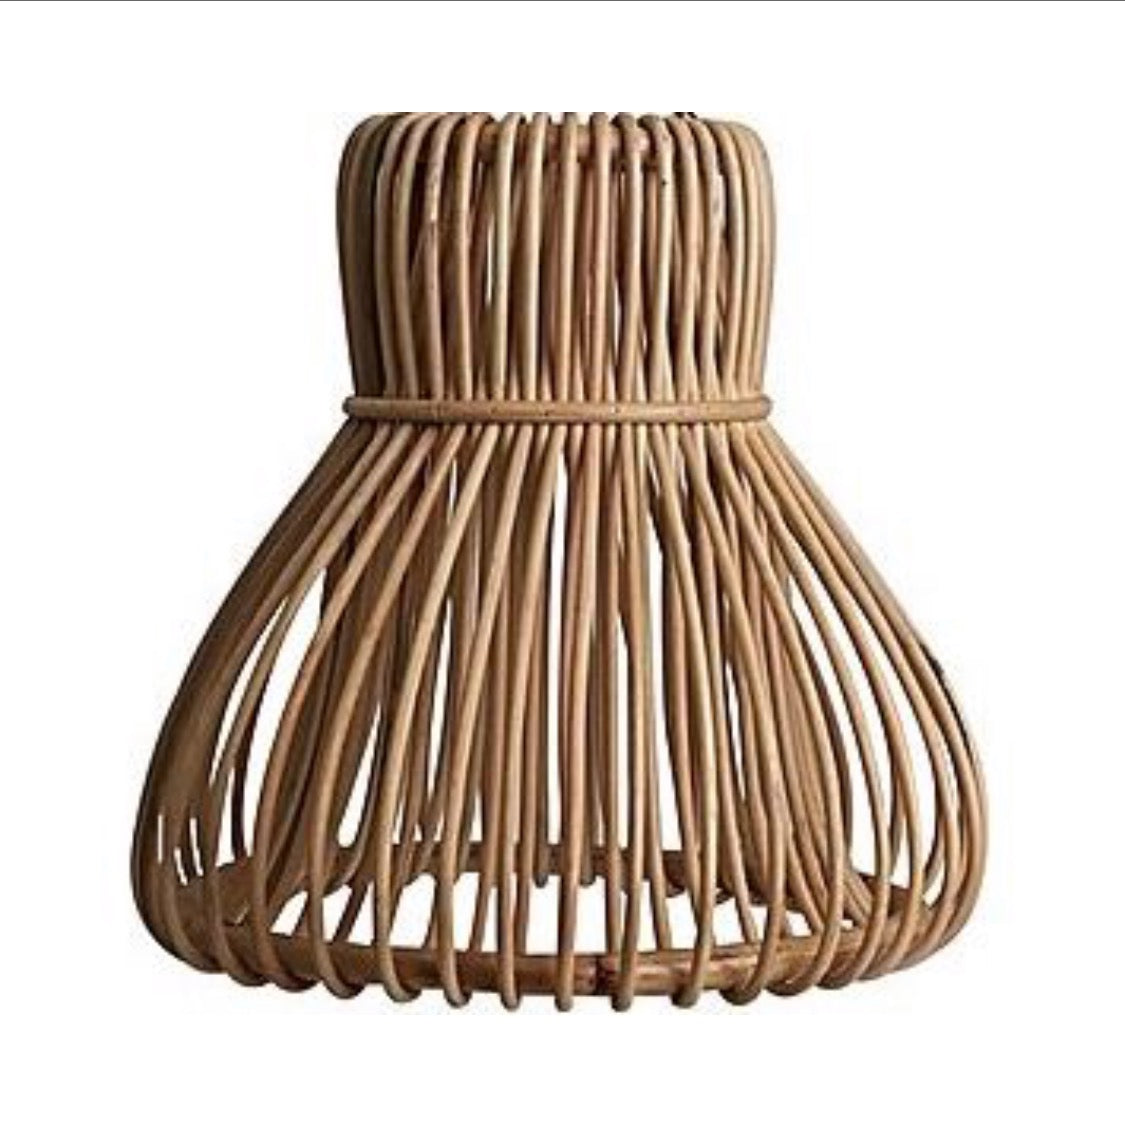 rattan wicker pendant light